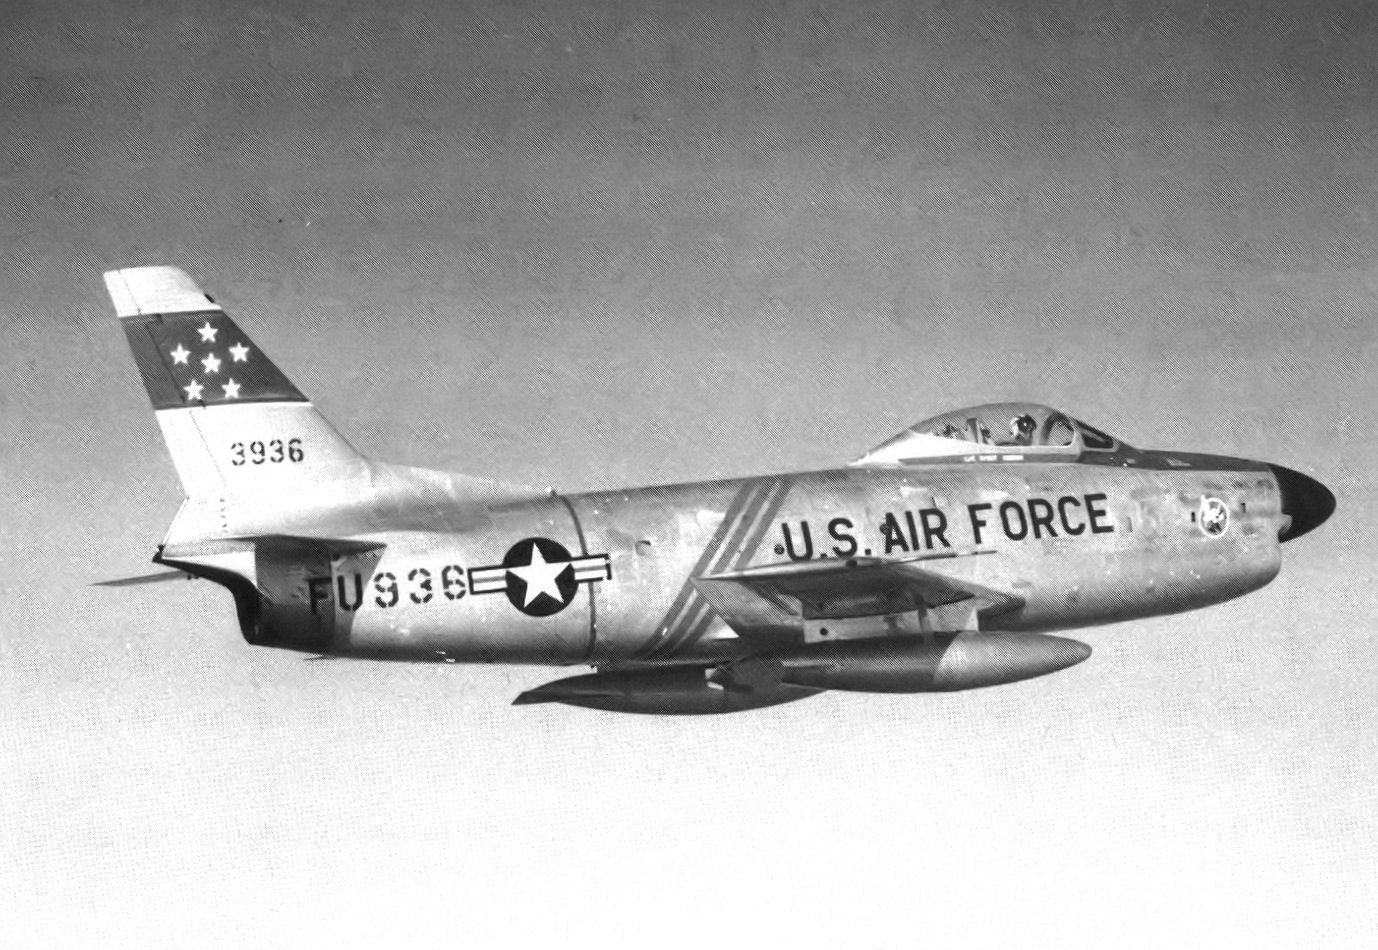 539th_Fighter-Interceptor_Squadron_North_American_F-86D-45-NA_Sabre_52-3936_1954.jpg